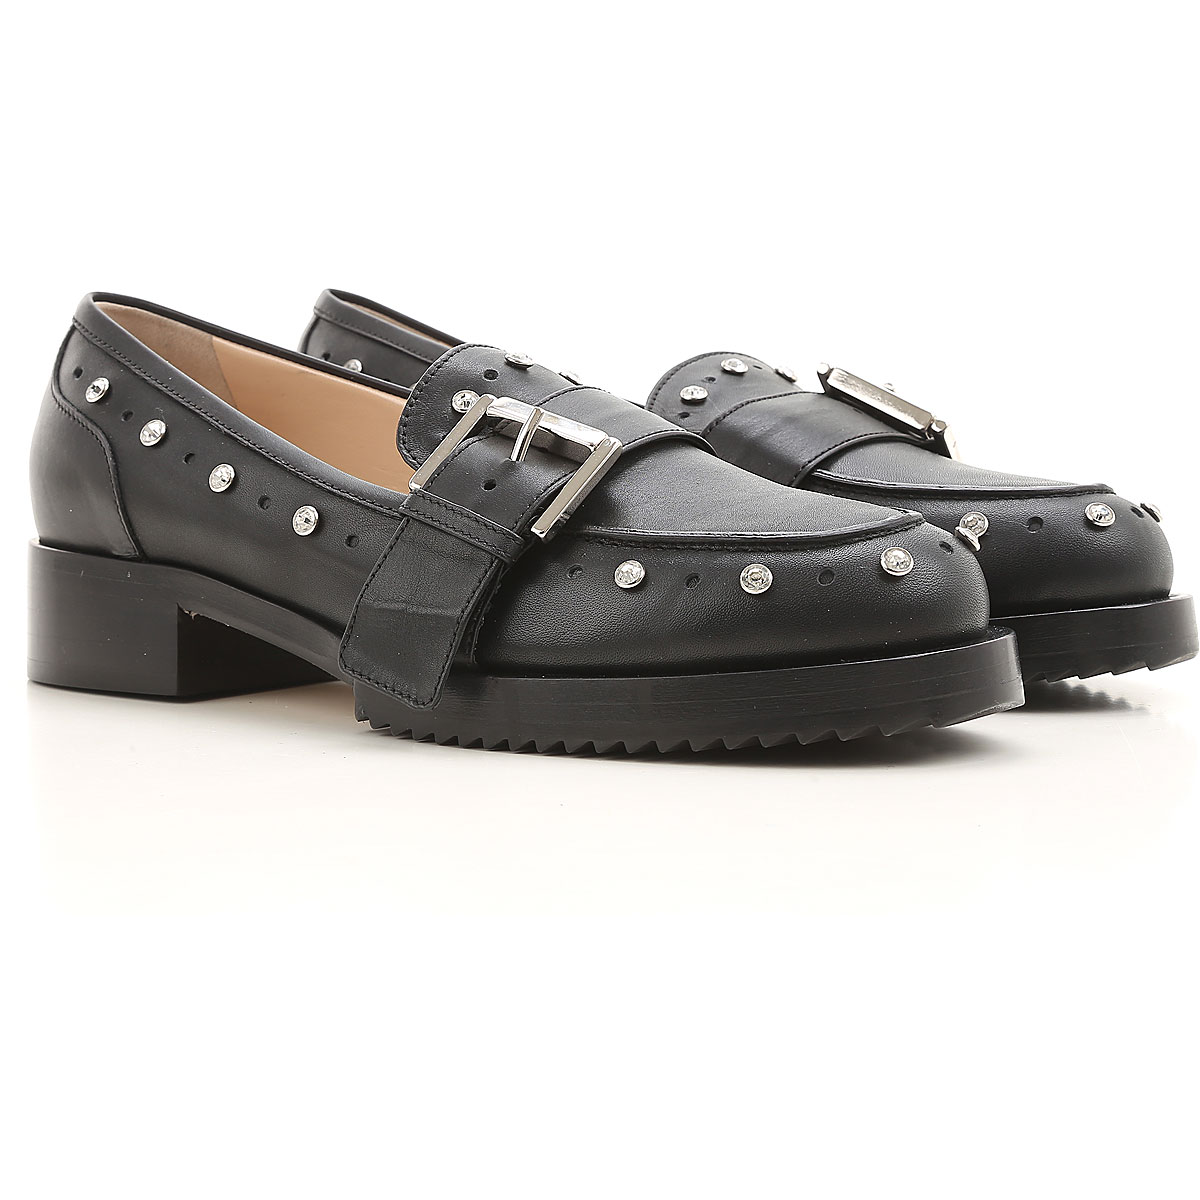 NO 21 Loafers for Women in Outlet Black USA - GOOFASH